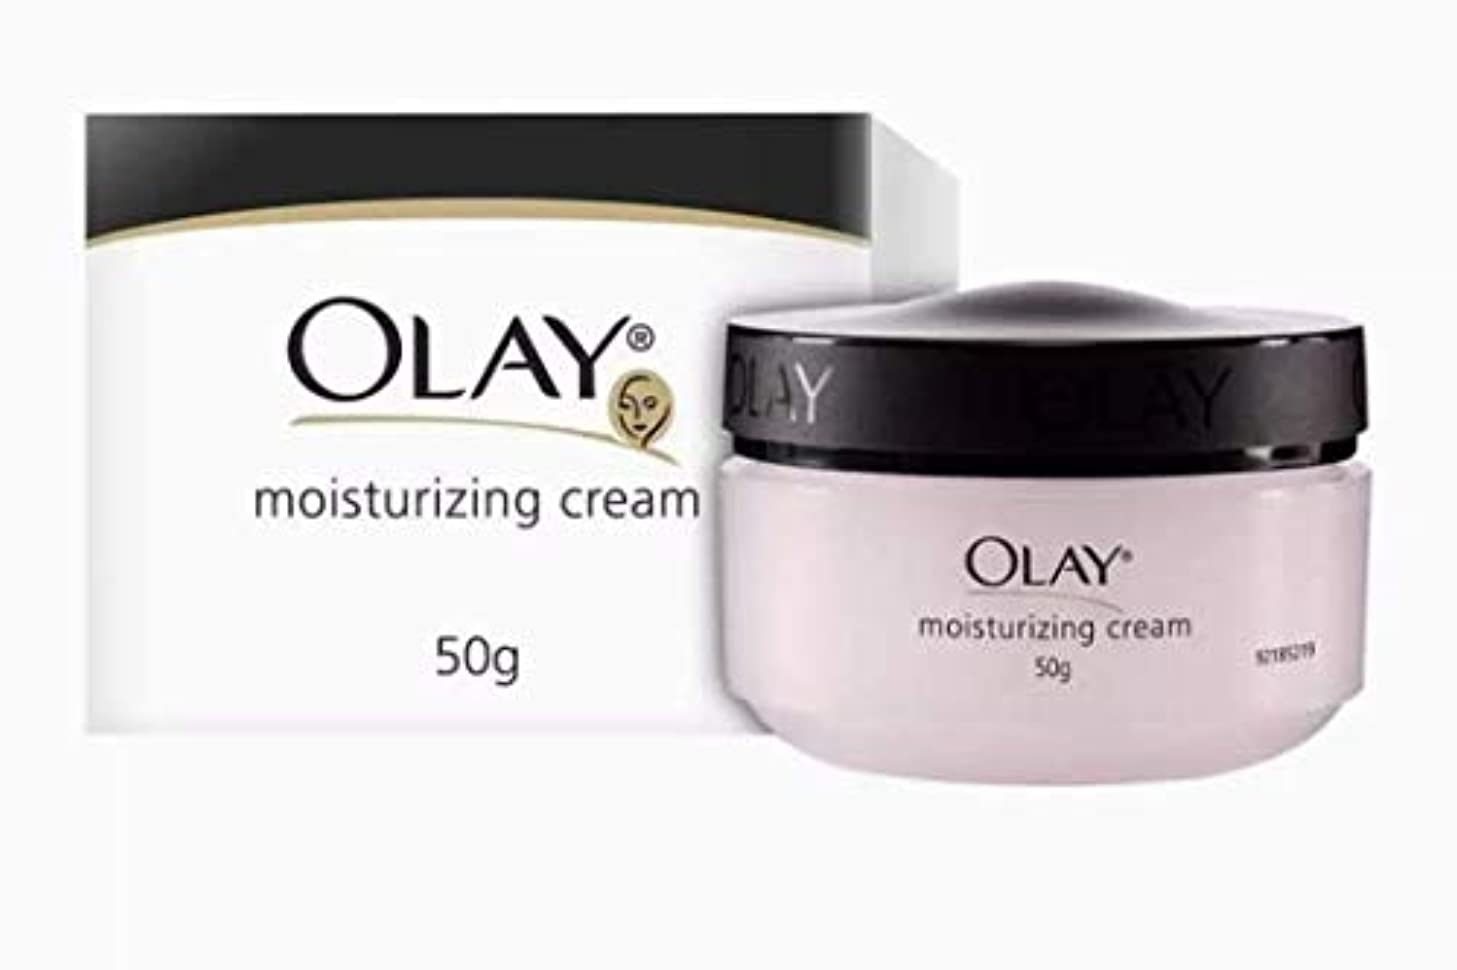 OLAY Moisturizing cream 50g [並行輸入品]